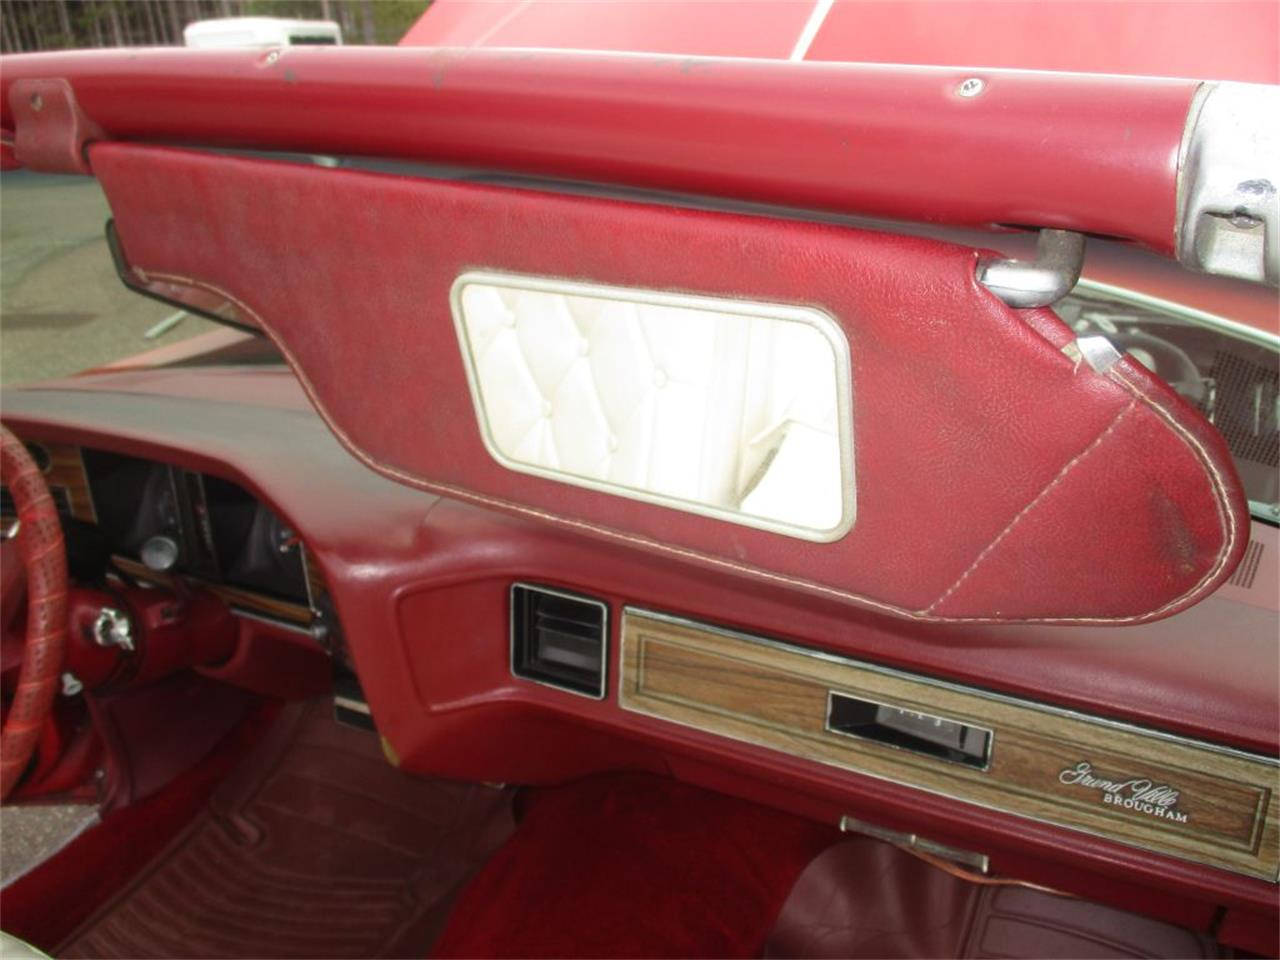 1975 Pontiac Grand Ville for sale in Ham Lake, MN – photo 45